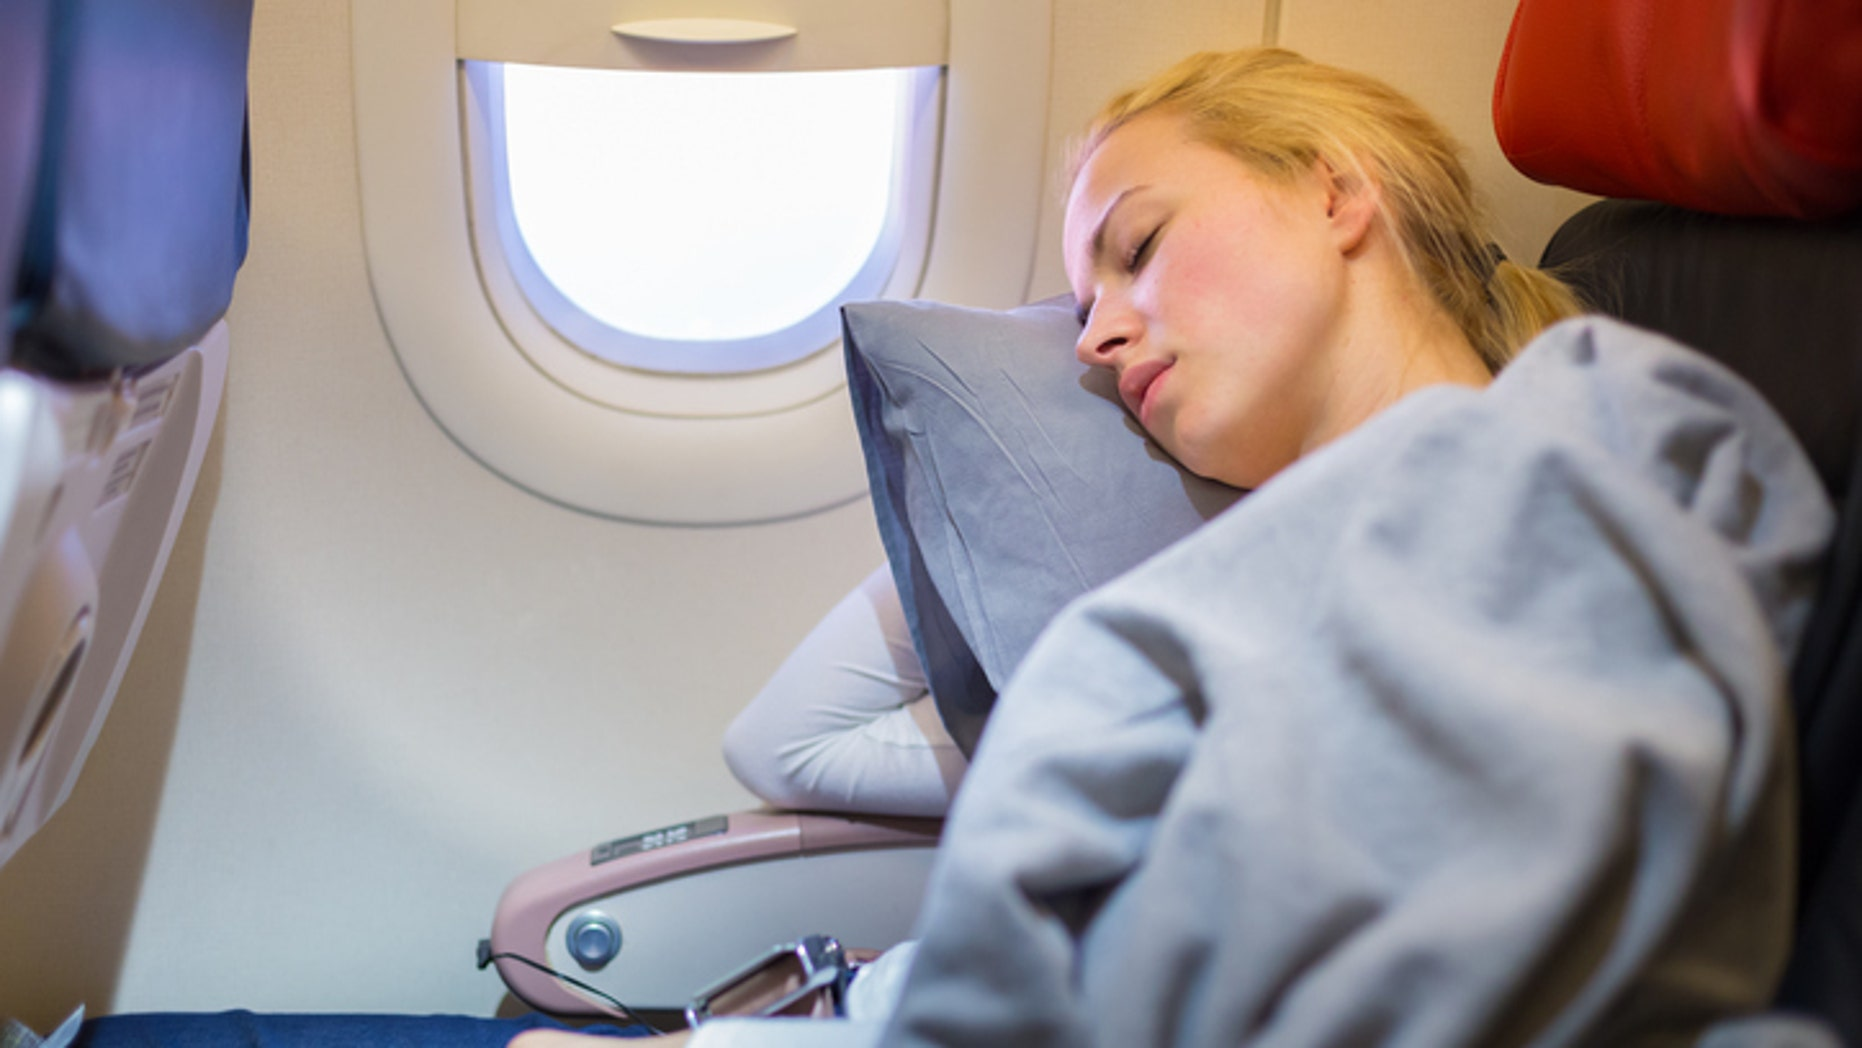 Try these tricks to catch some rest on your next flight.